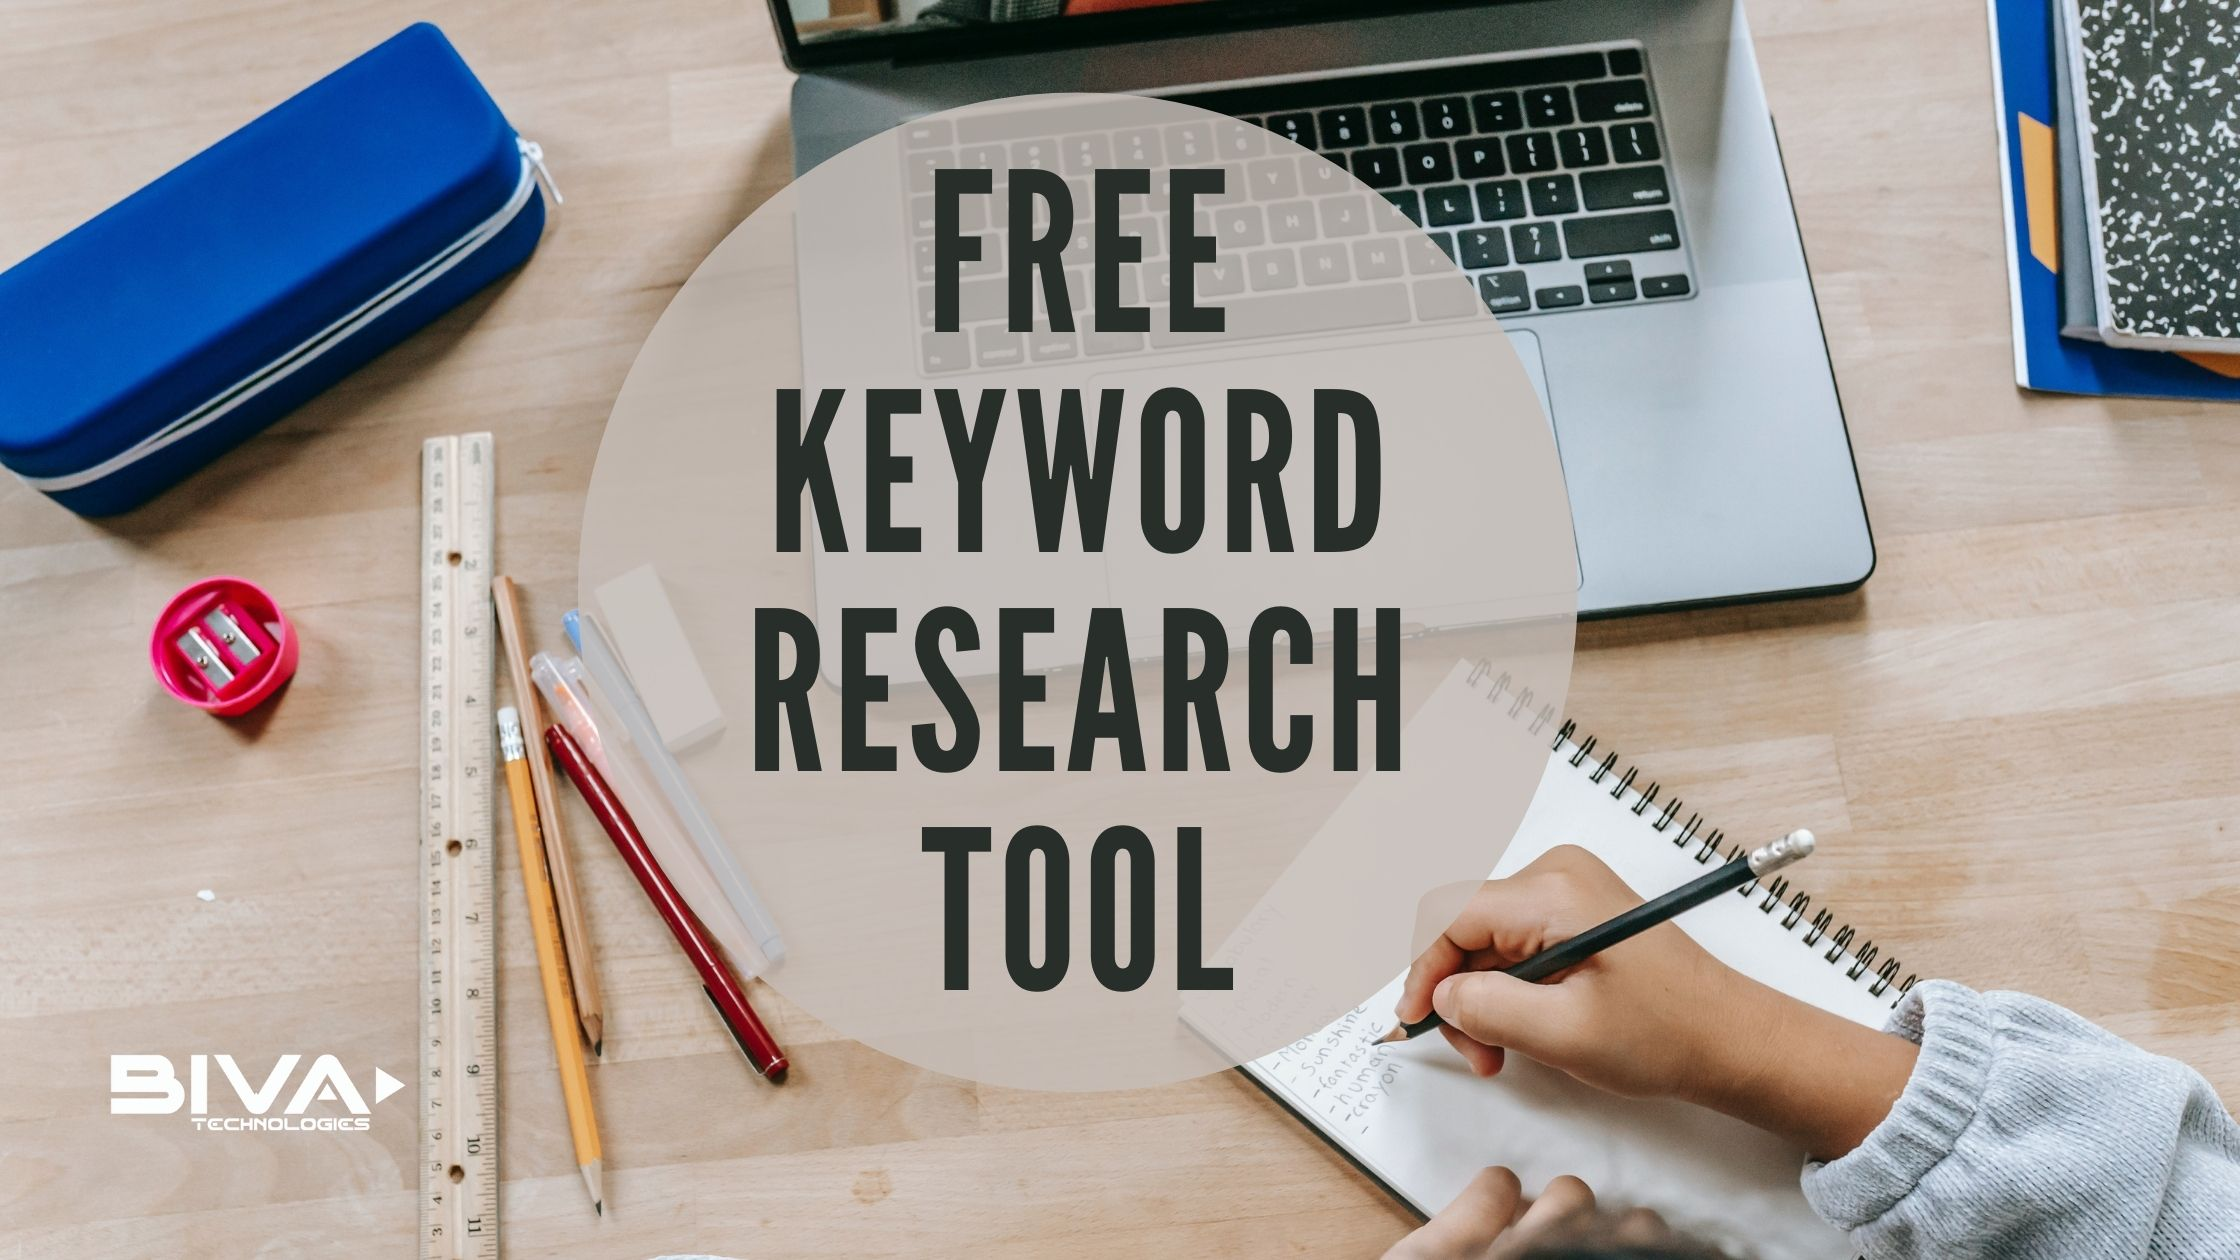 5+ 100% Free Keyword Research Tool: How to Use in 2021